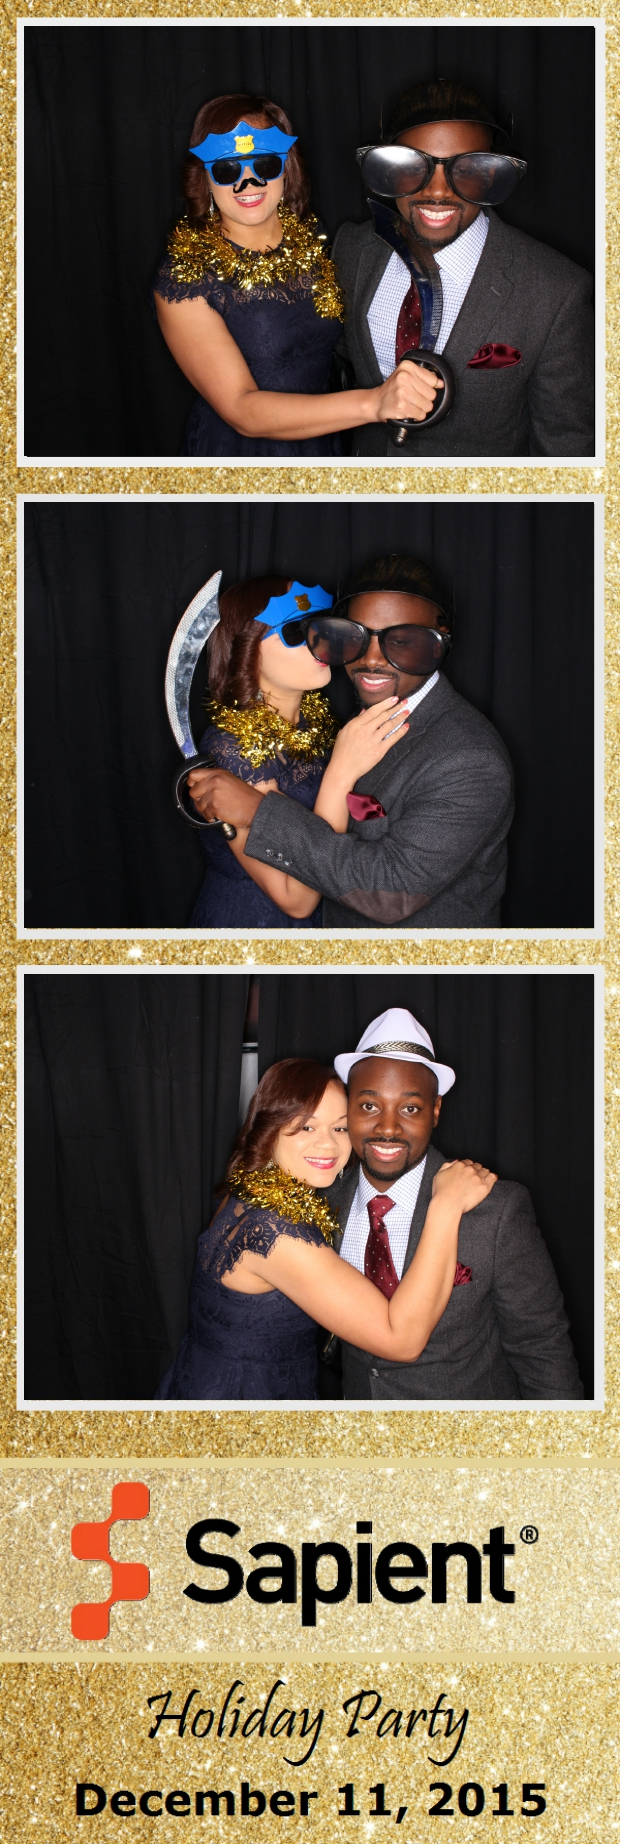 Guest House Events Photo Booth Sapient Holiday Party (11).jpg